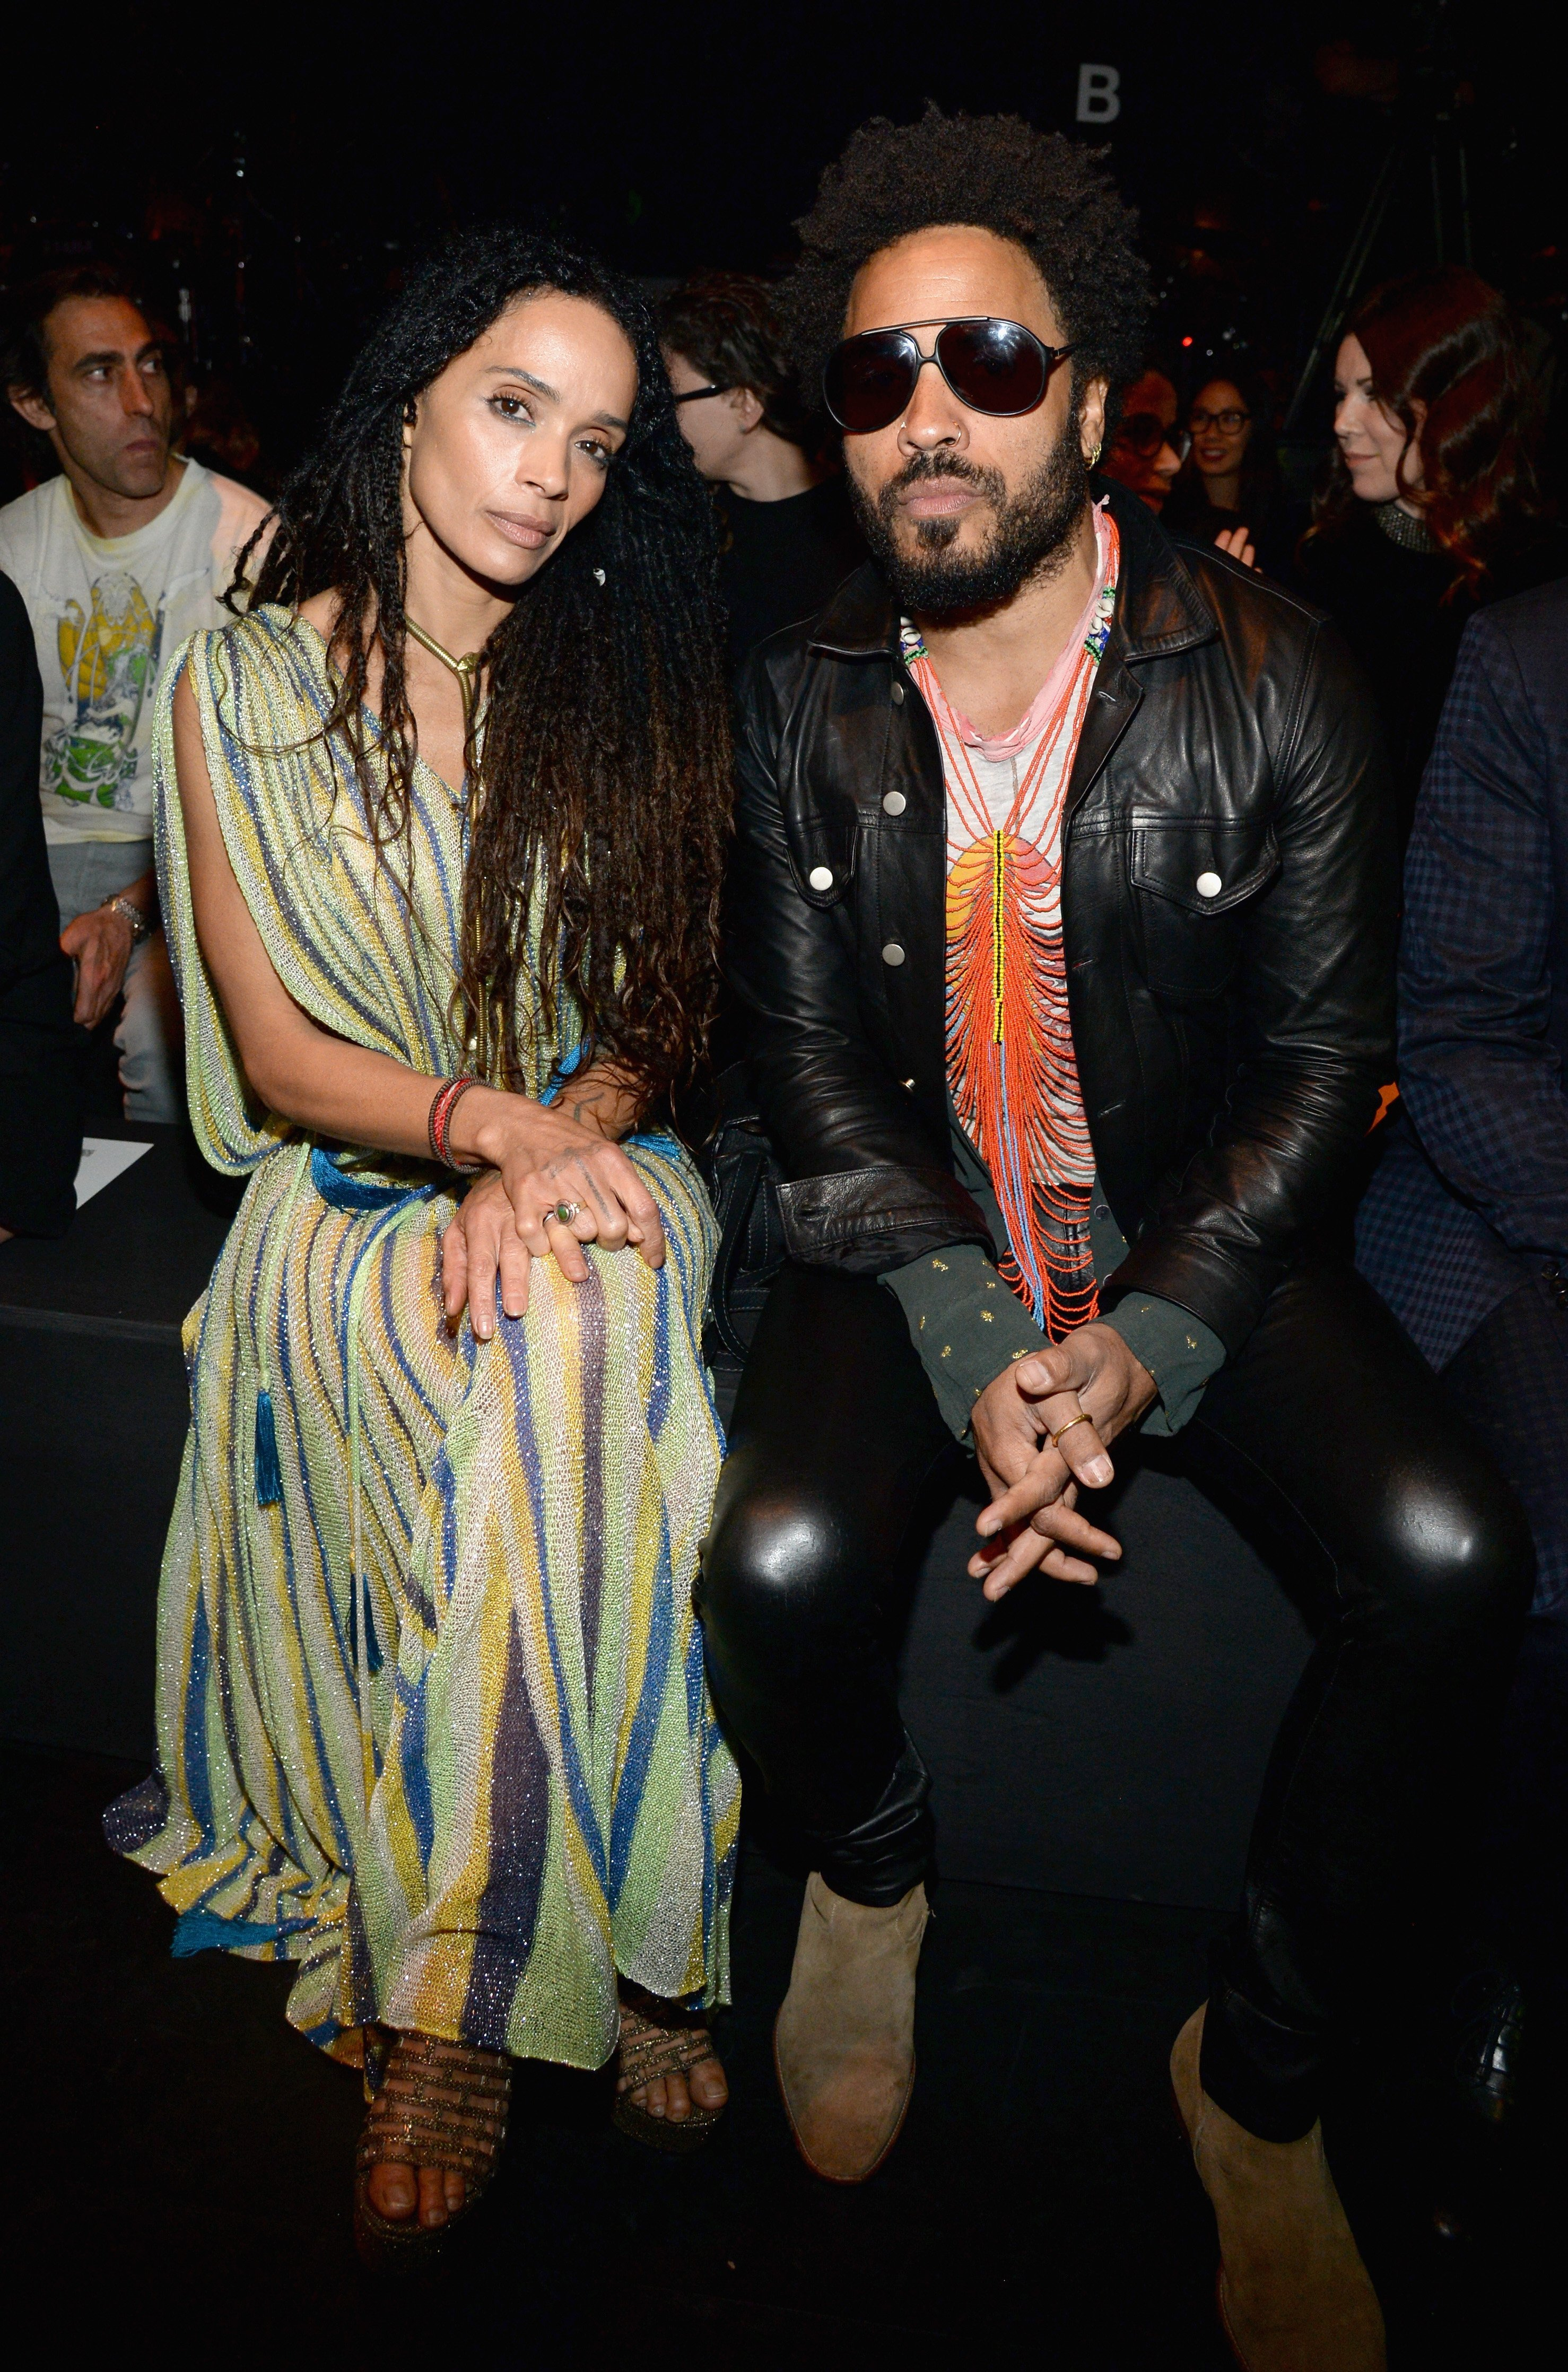 Lisa Bonet and recording artist Lenny Kravitz attend Saint Laurent at the Palladium in February 2016. | Photo: GettyImages